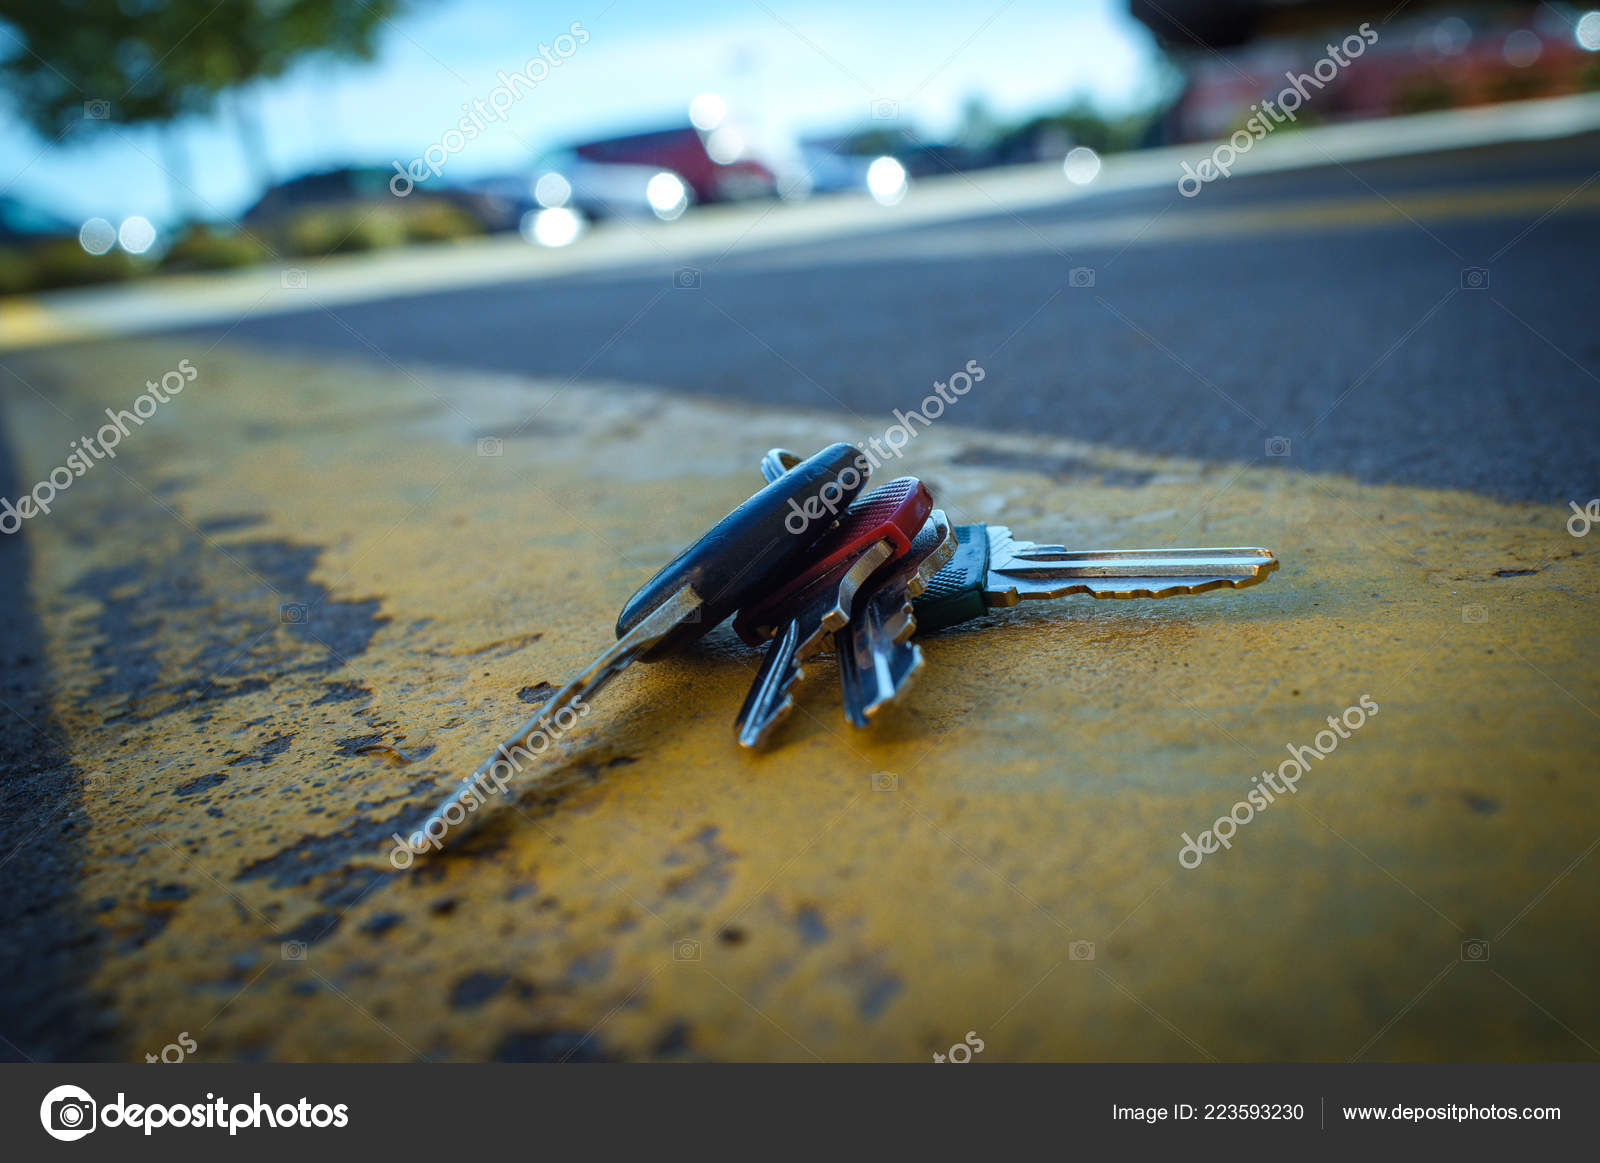 Lost Car Keys >> Lost Car Keys Distressed Road Painted Yellow Lines Stock